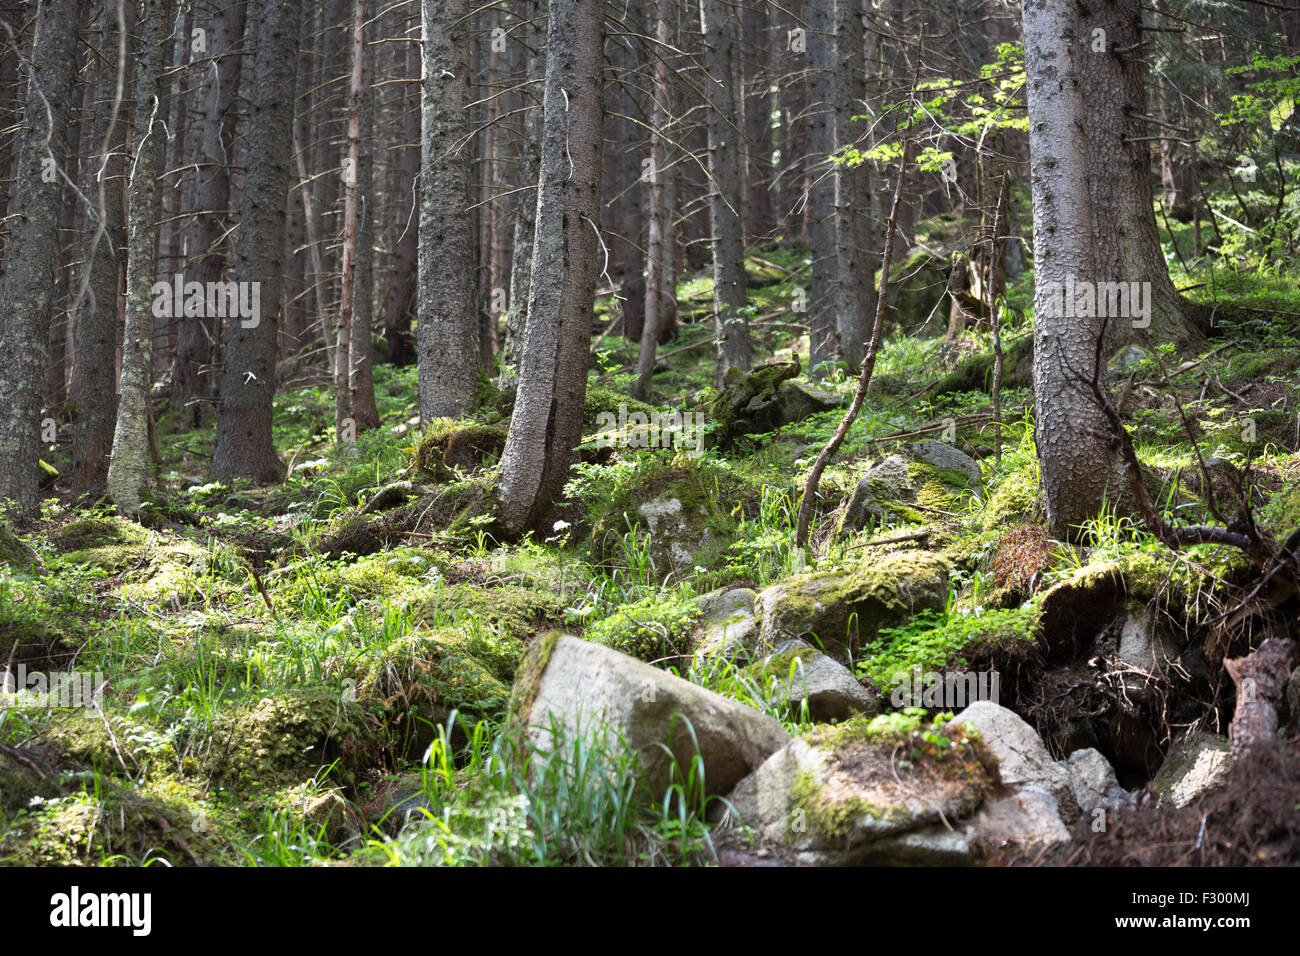 wald von tatra nationalpark zakopane polen stockfoto. Black Bedroom Furniture Sets. Home Design Ideas